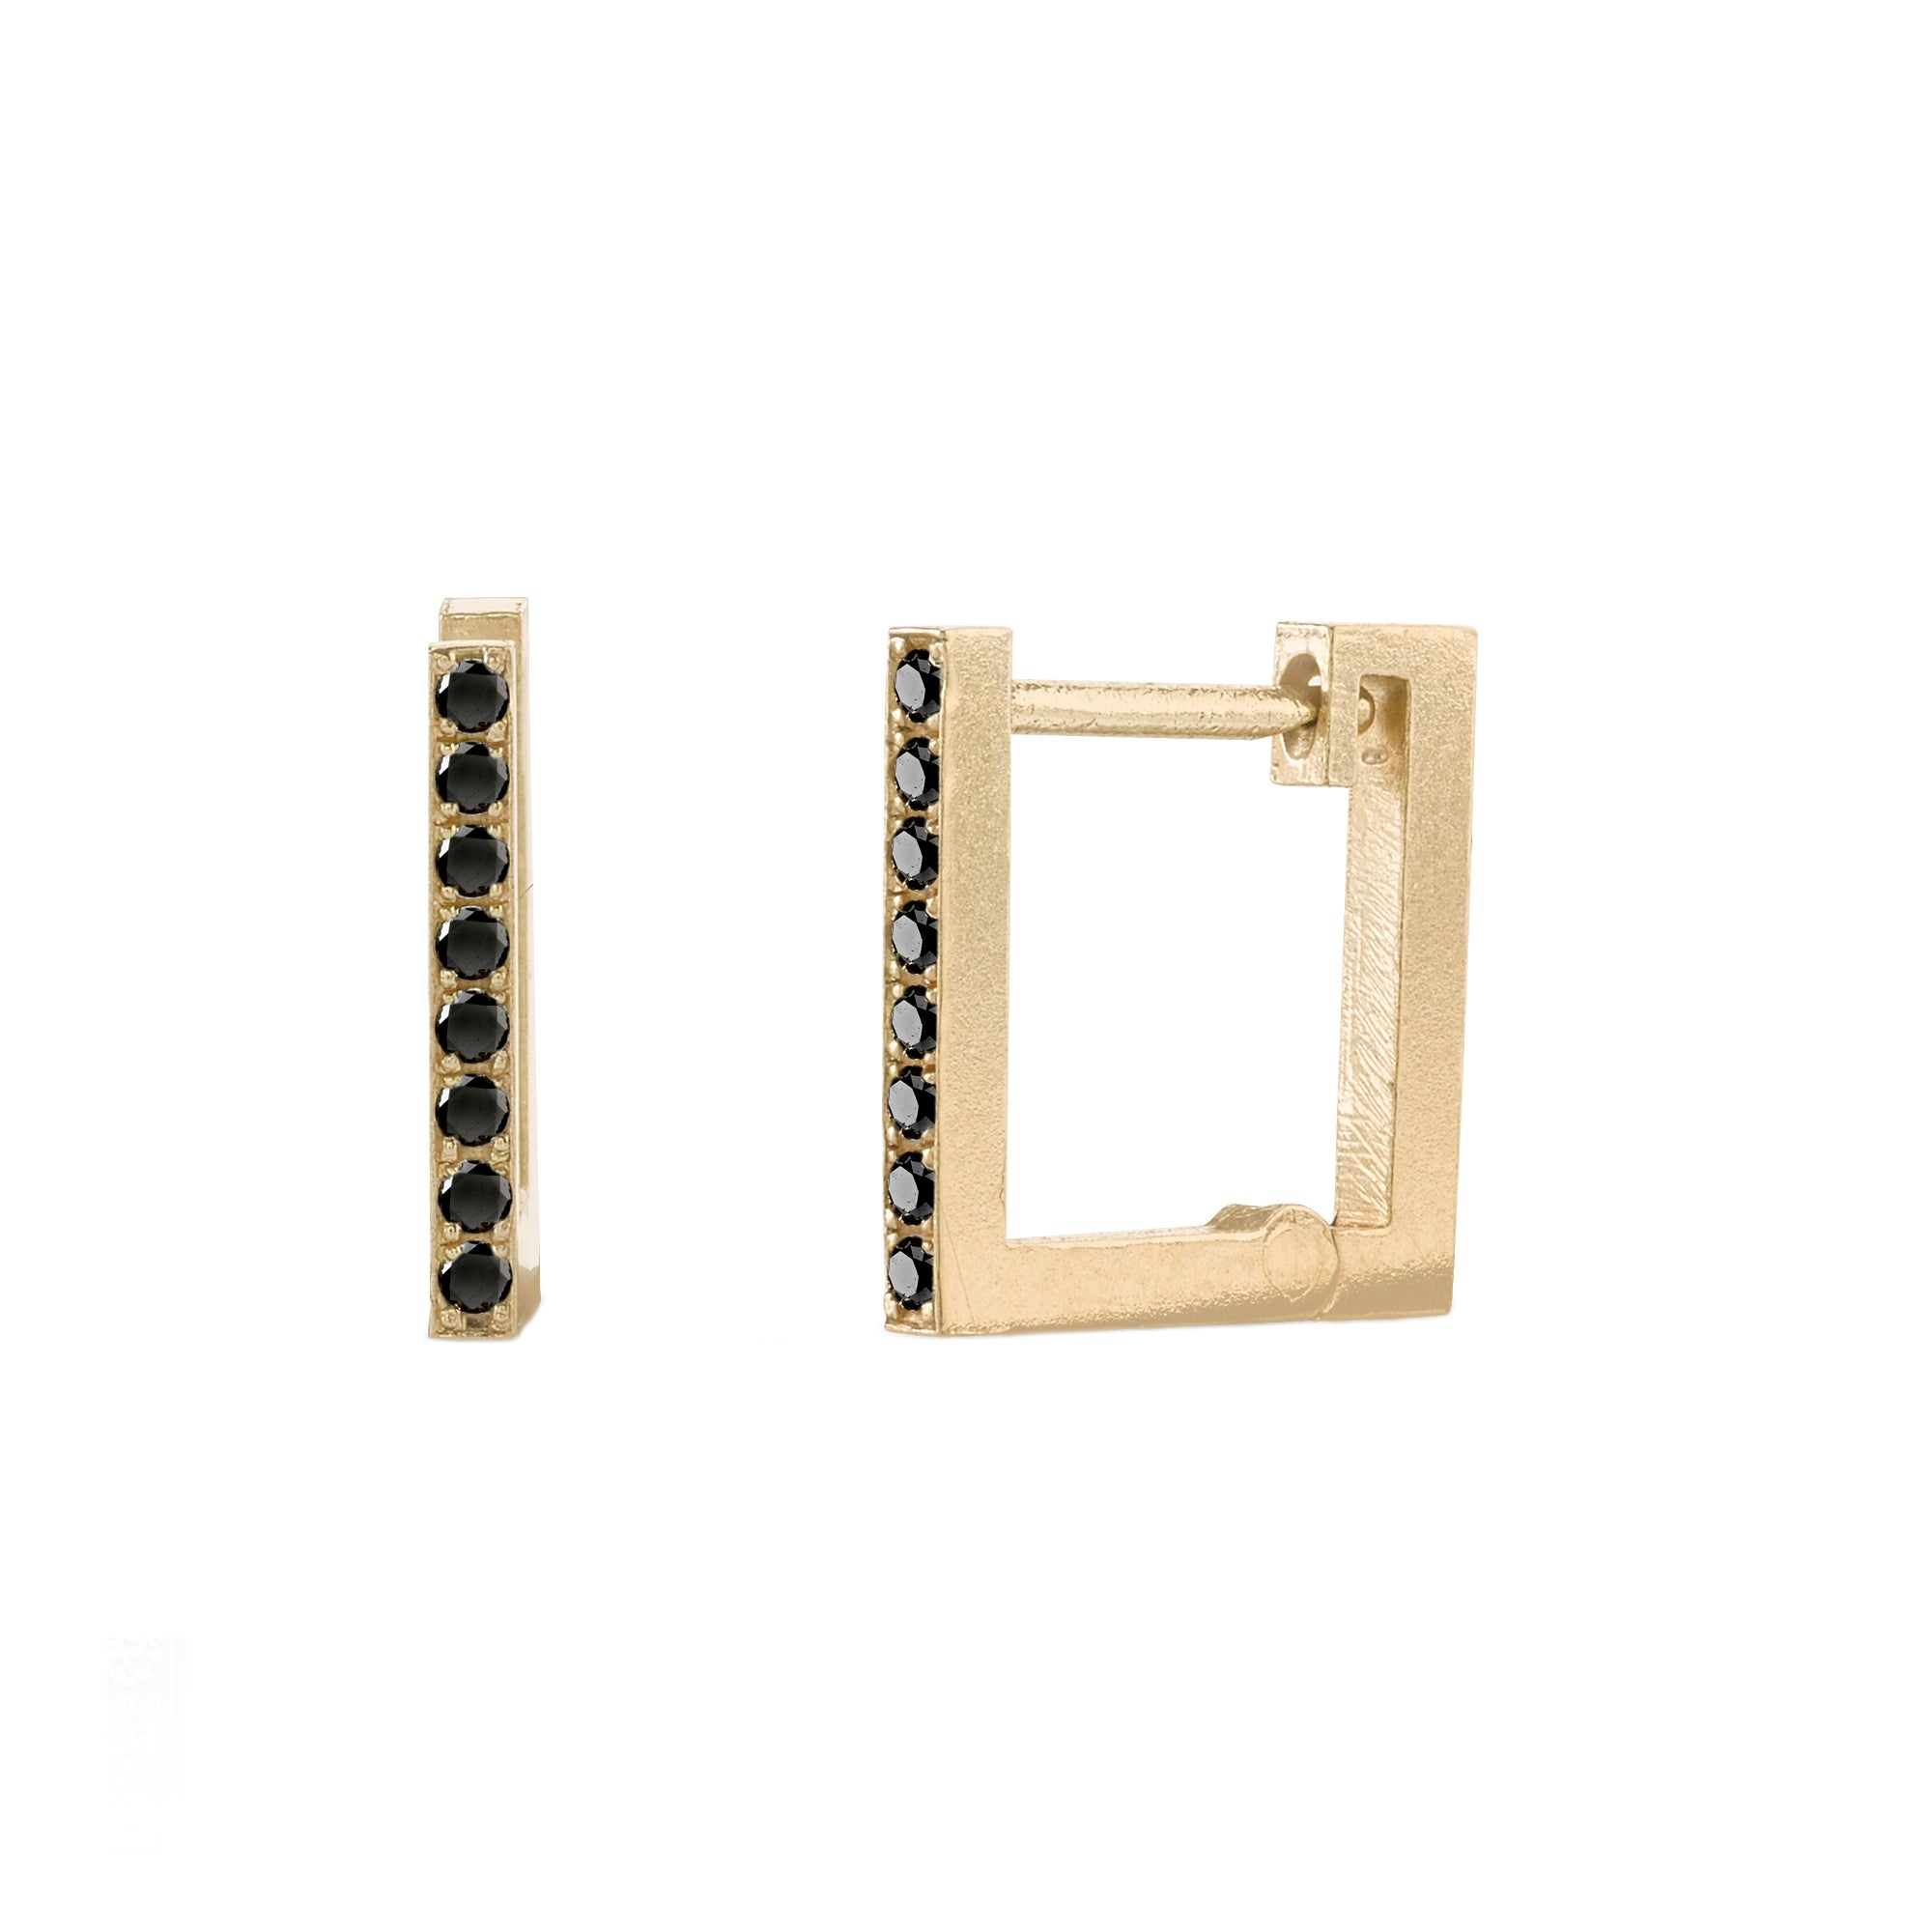 Black Diamond Square Huggies by Lizzie Mandler for Broken English Jewelry